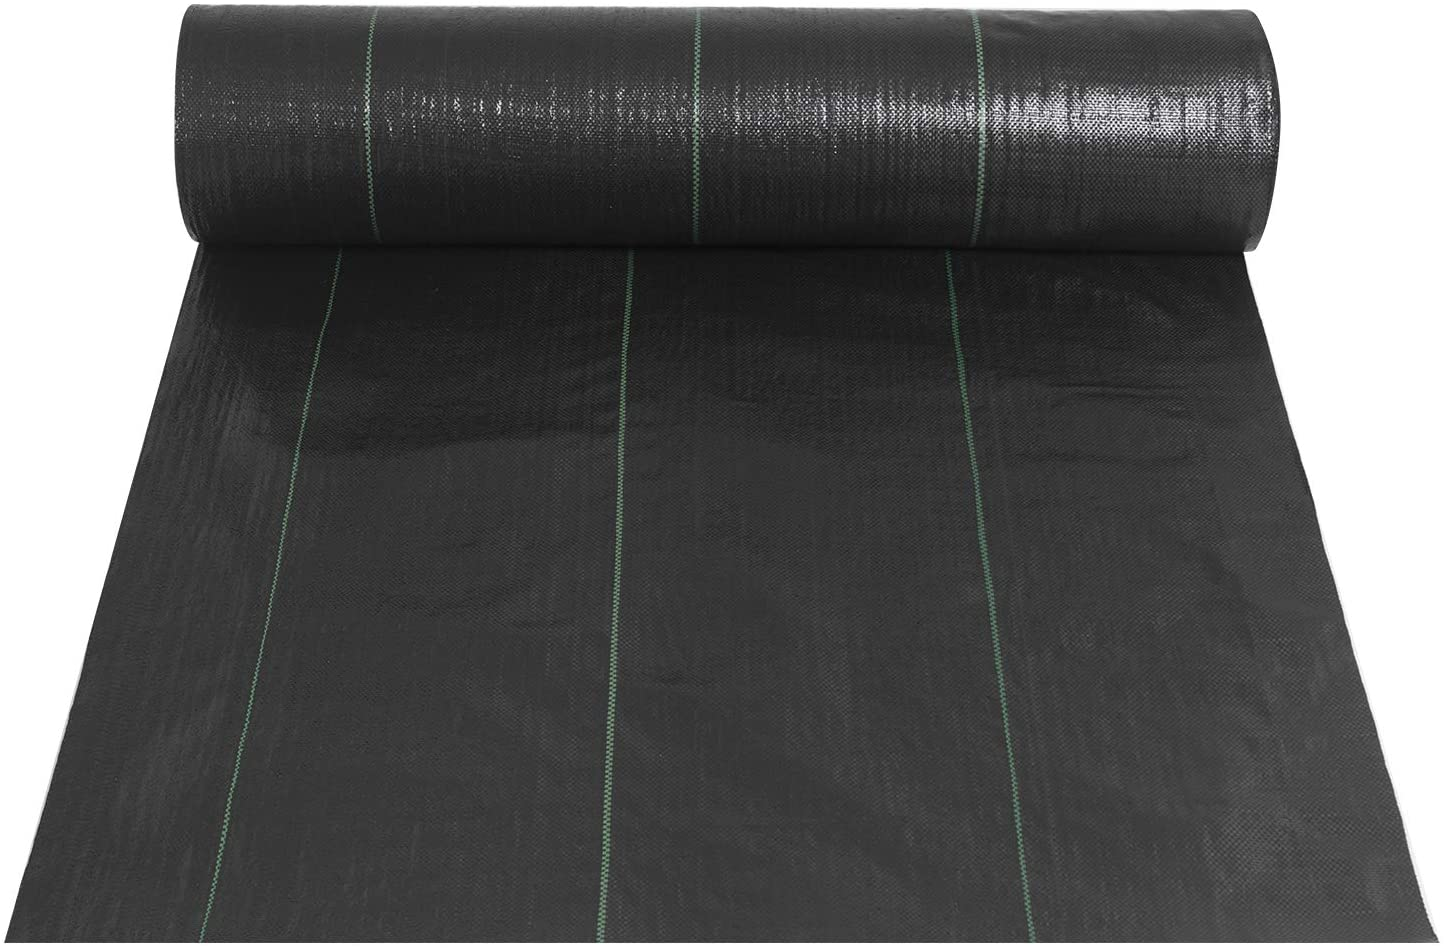 4×150FT Landscape Fabric 3.2 oz Heavy PP Brand new Weed Barrier Woven Us Selling and selling